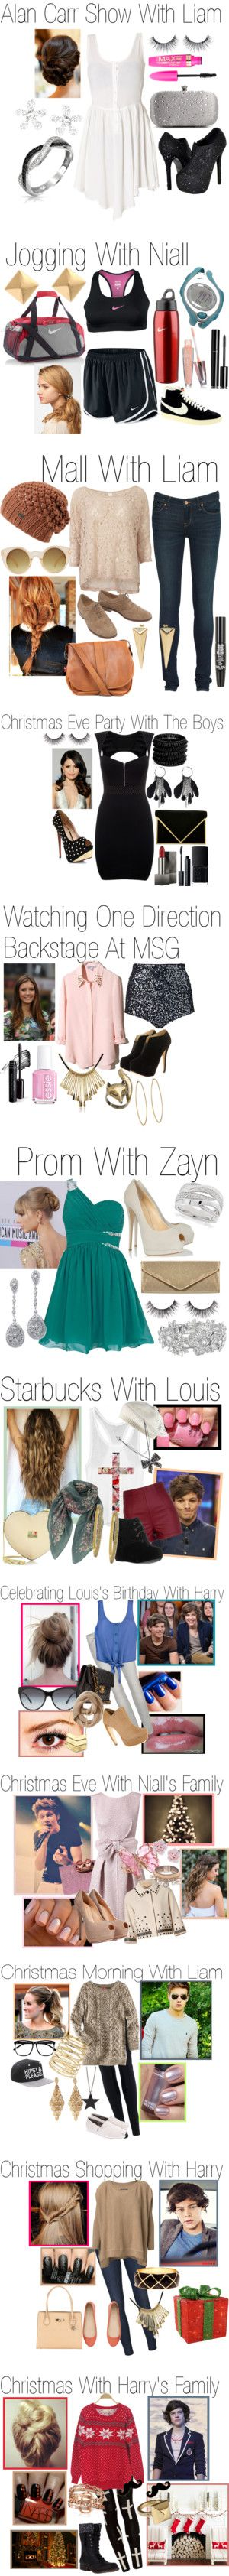 """One Direction Outfit"" by harrystyles2213 ❤ liked on Polyvore"